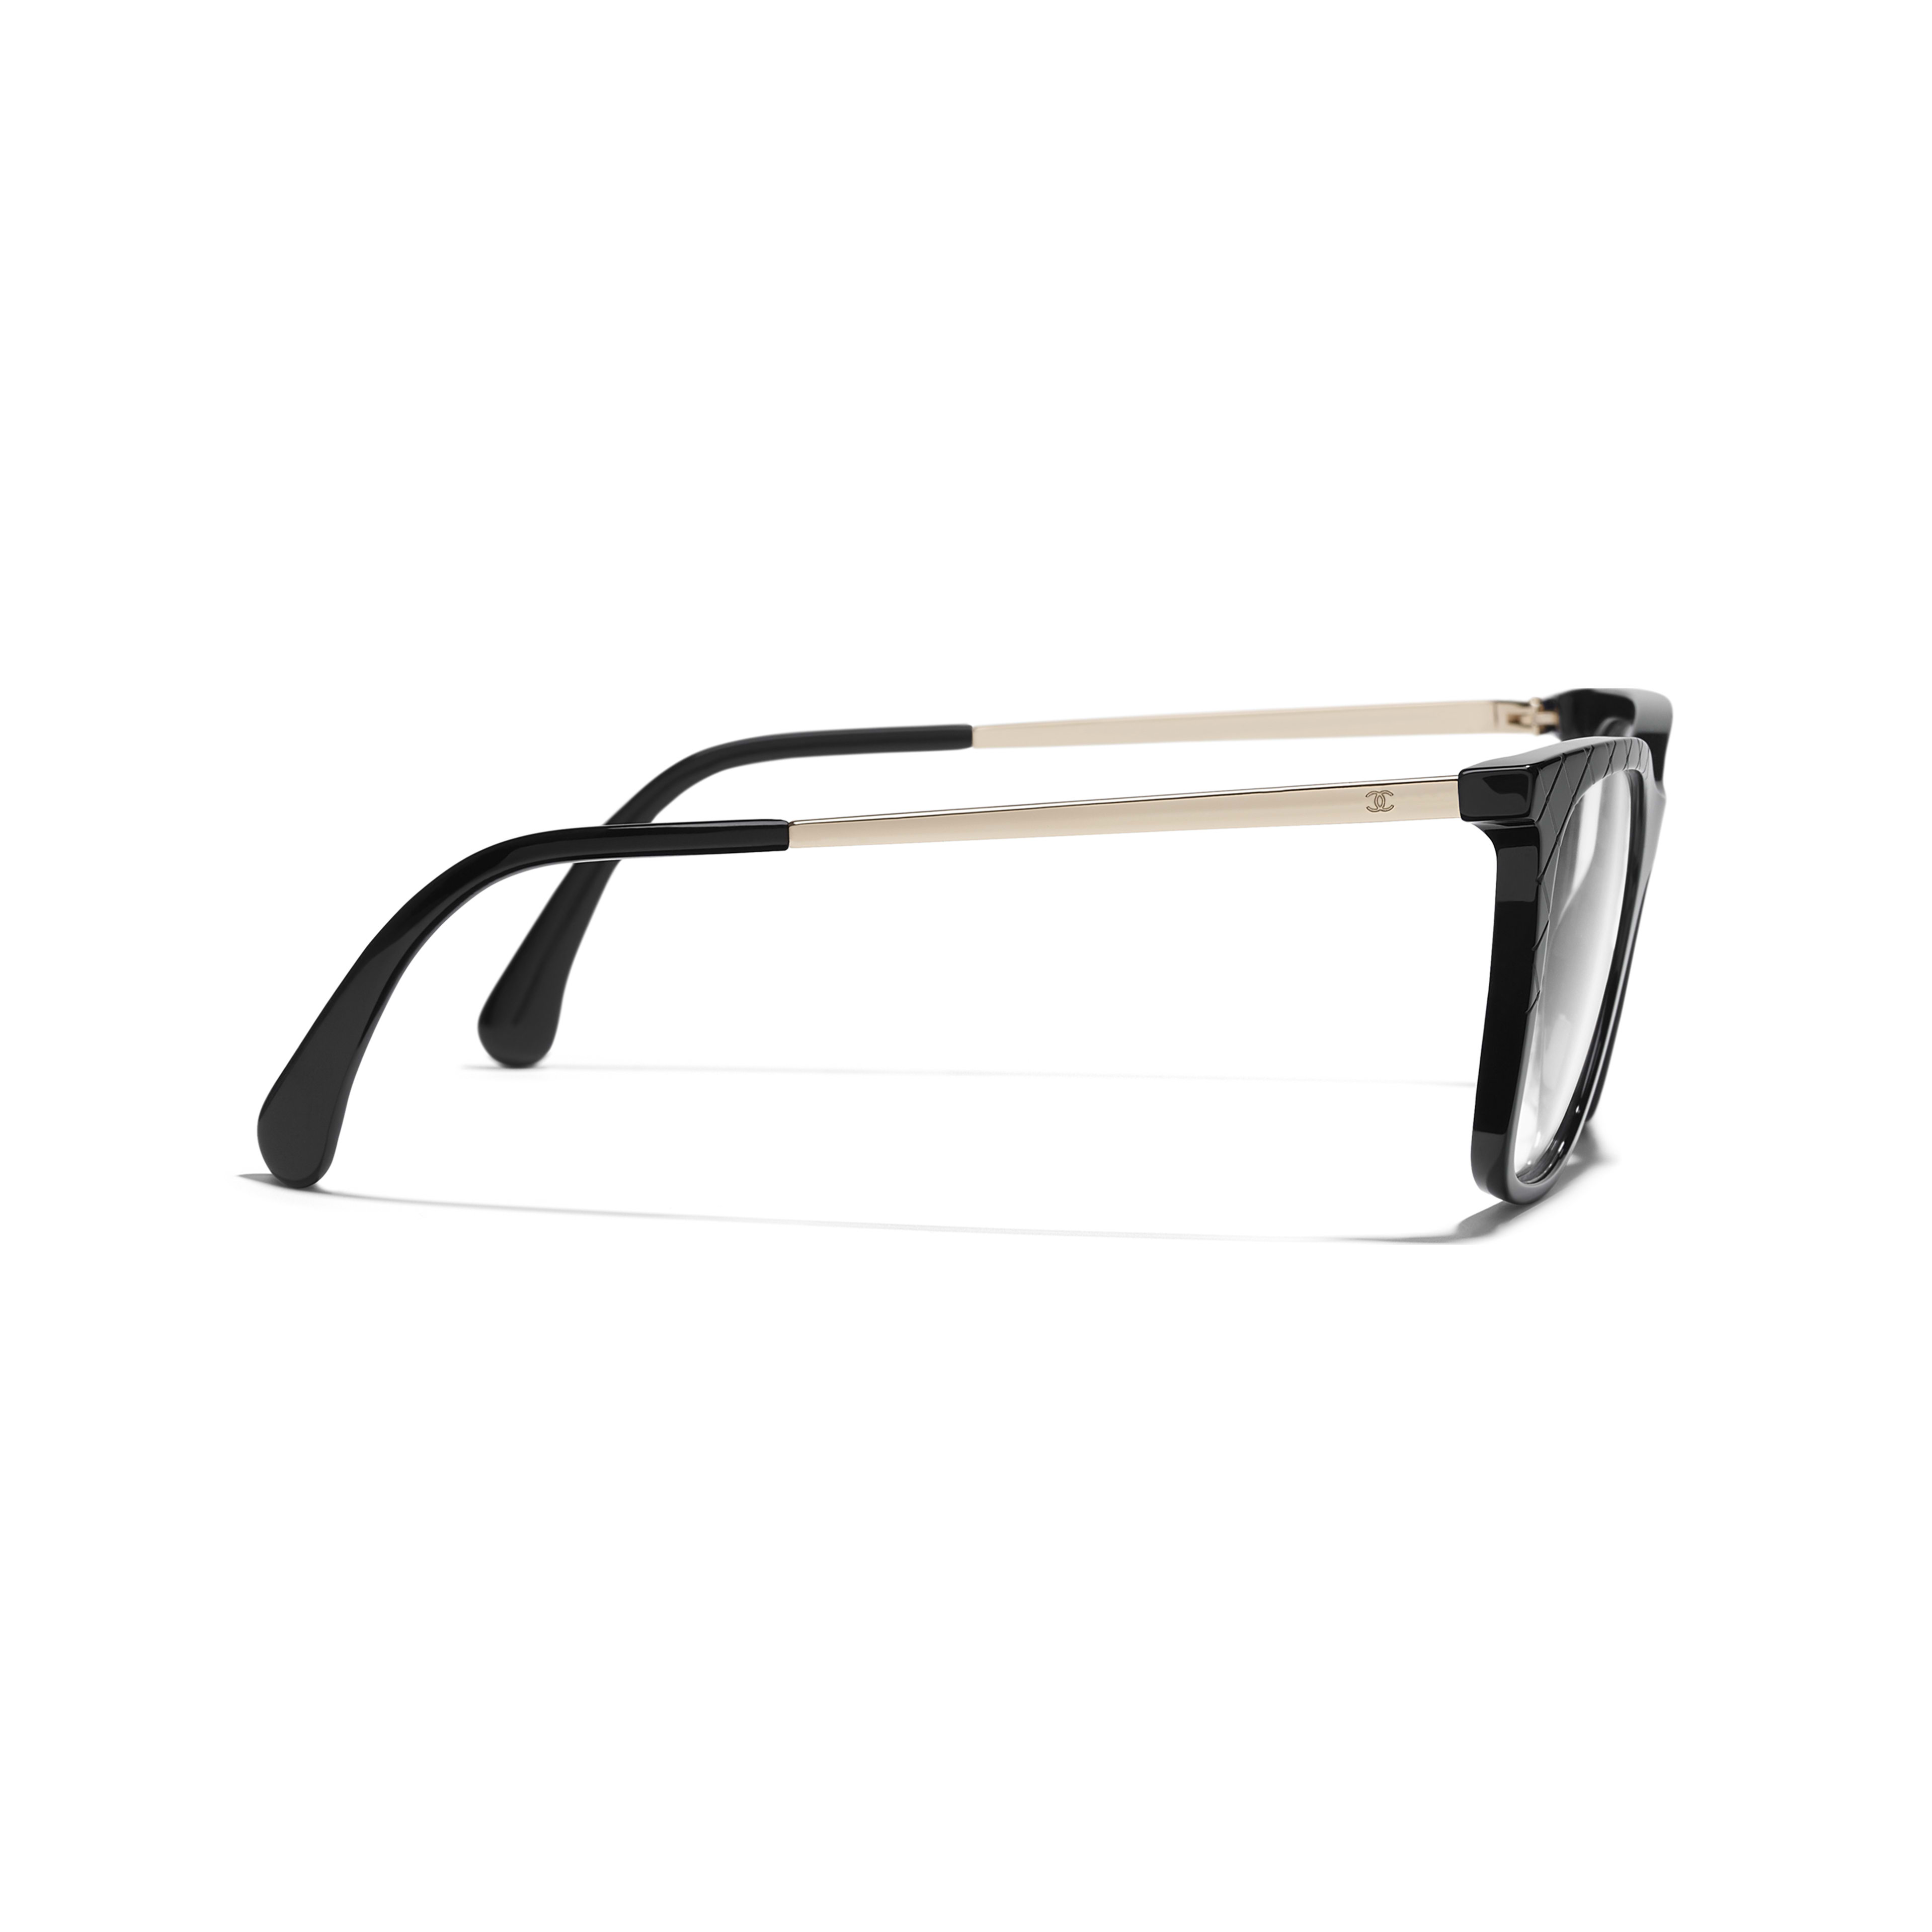 Rectangle Eyeglasses - Black - Acetate & Metal - Other view - see full sized version